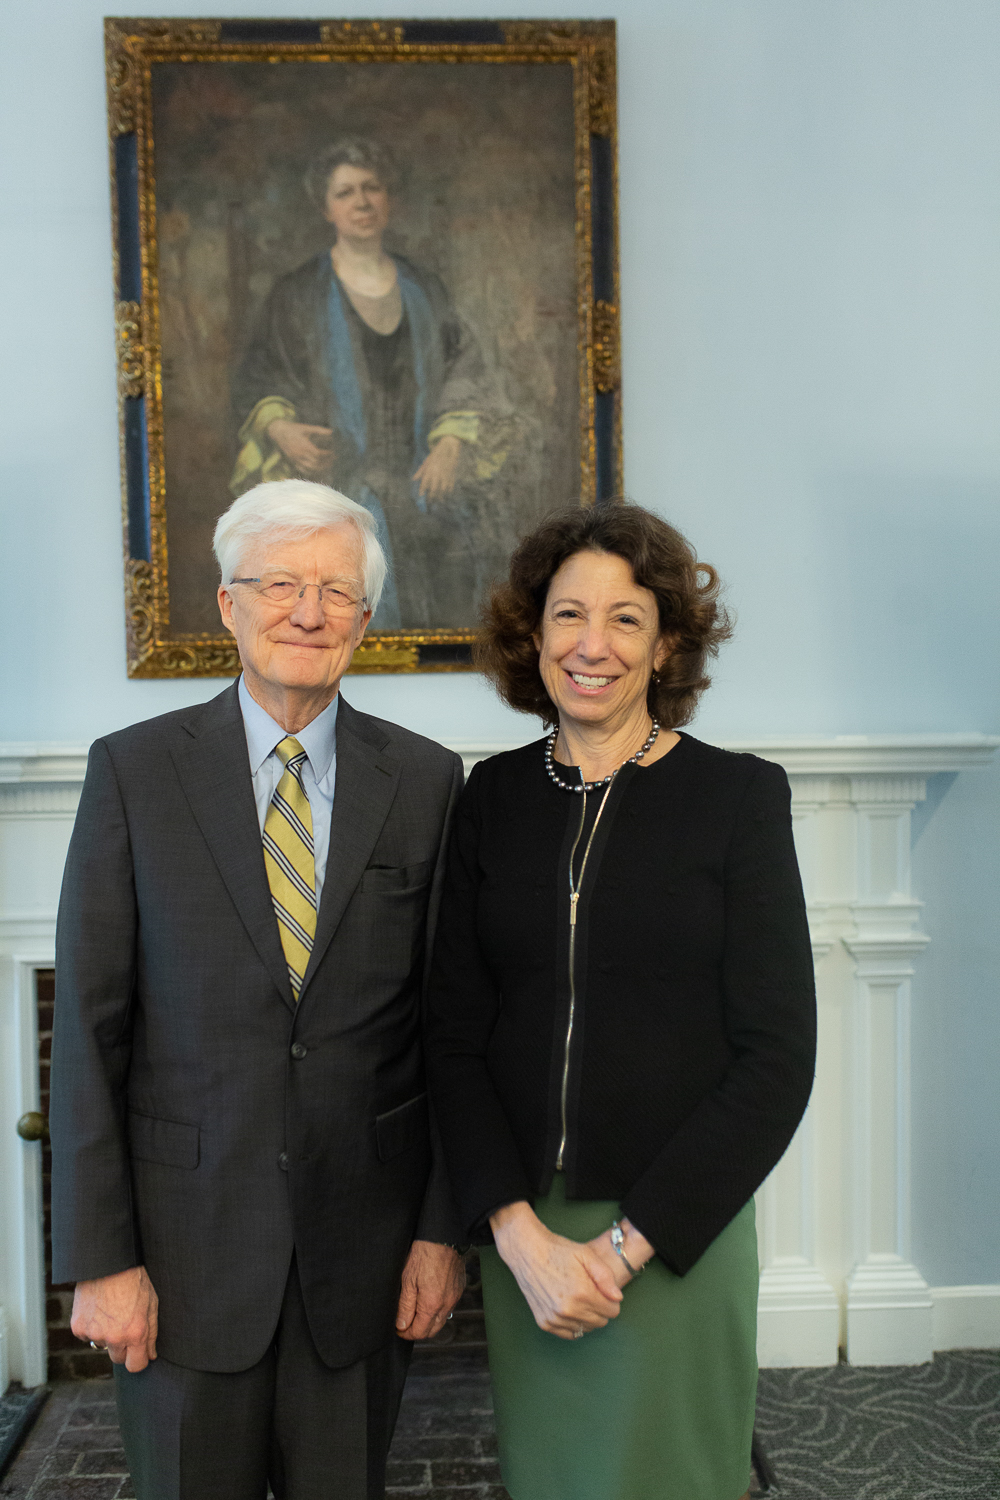 Left to right: Interim President Rich Hansen and President-elect Janet Steinmayer in front of a painting of Edith Lesley.